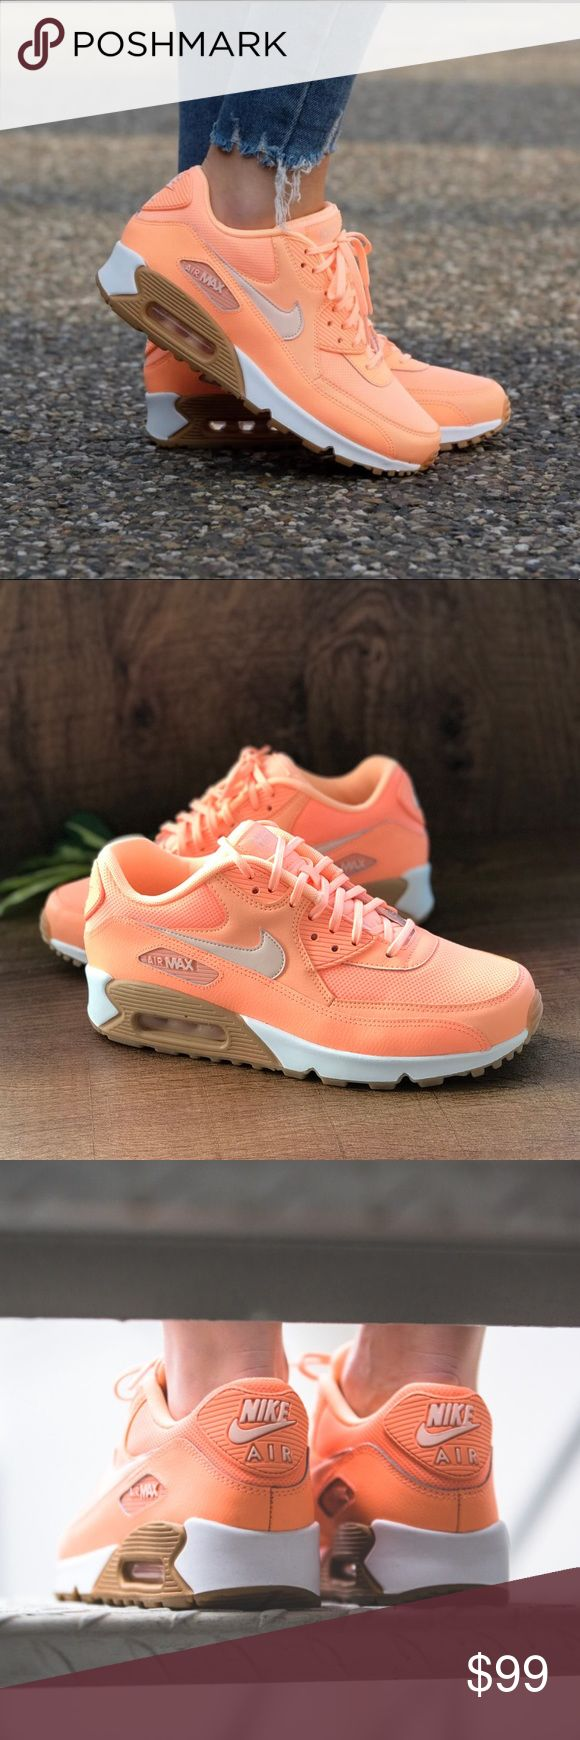 "NWT Nike Air Max 90 Sunset Glow WMNS Brand new with no lid box. Price is firm! No trades. Lady Air Max lovers can get a bright ray of sunshine on their feet this summer with the all-new ""Sunset Glow"" edition of the Air Max 90. Perfect for your tropical summertime vibes, the iconic Air Max model gets blasted with bright orange across the synthetic leather and mesh upper with a white midsole and the perfect touch for the outsole: gum rubber. Grab a pair while they last from select Nike…"